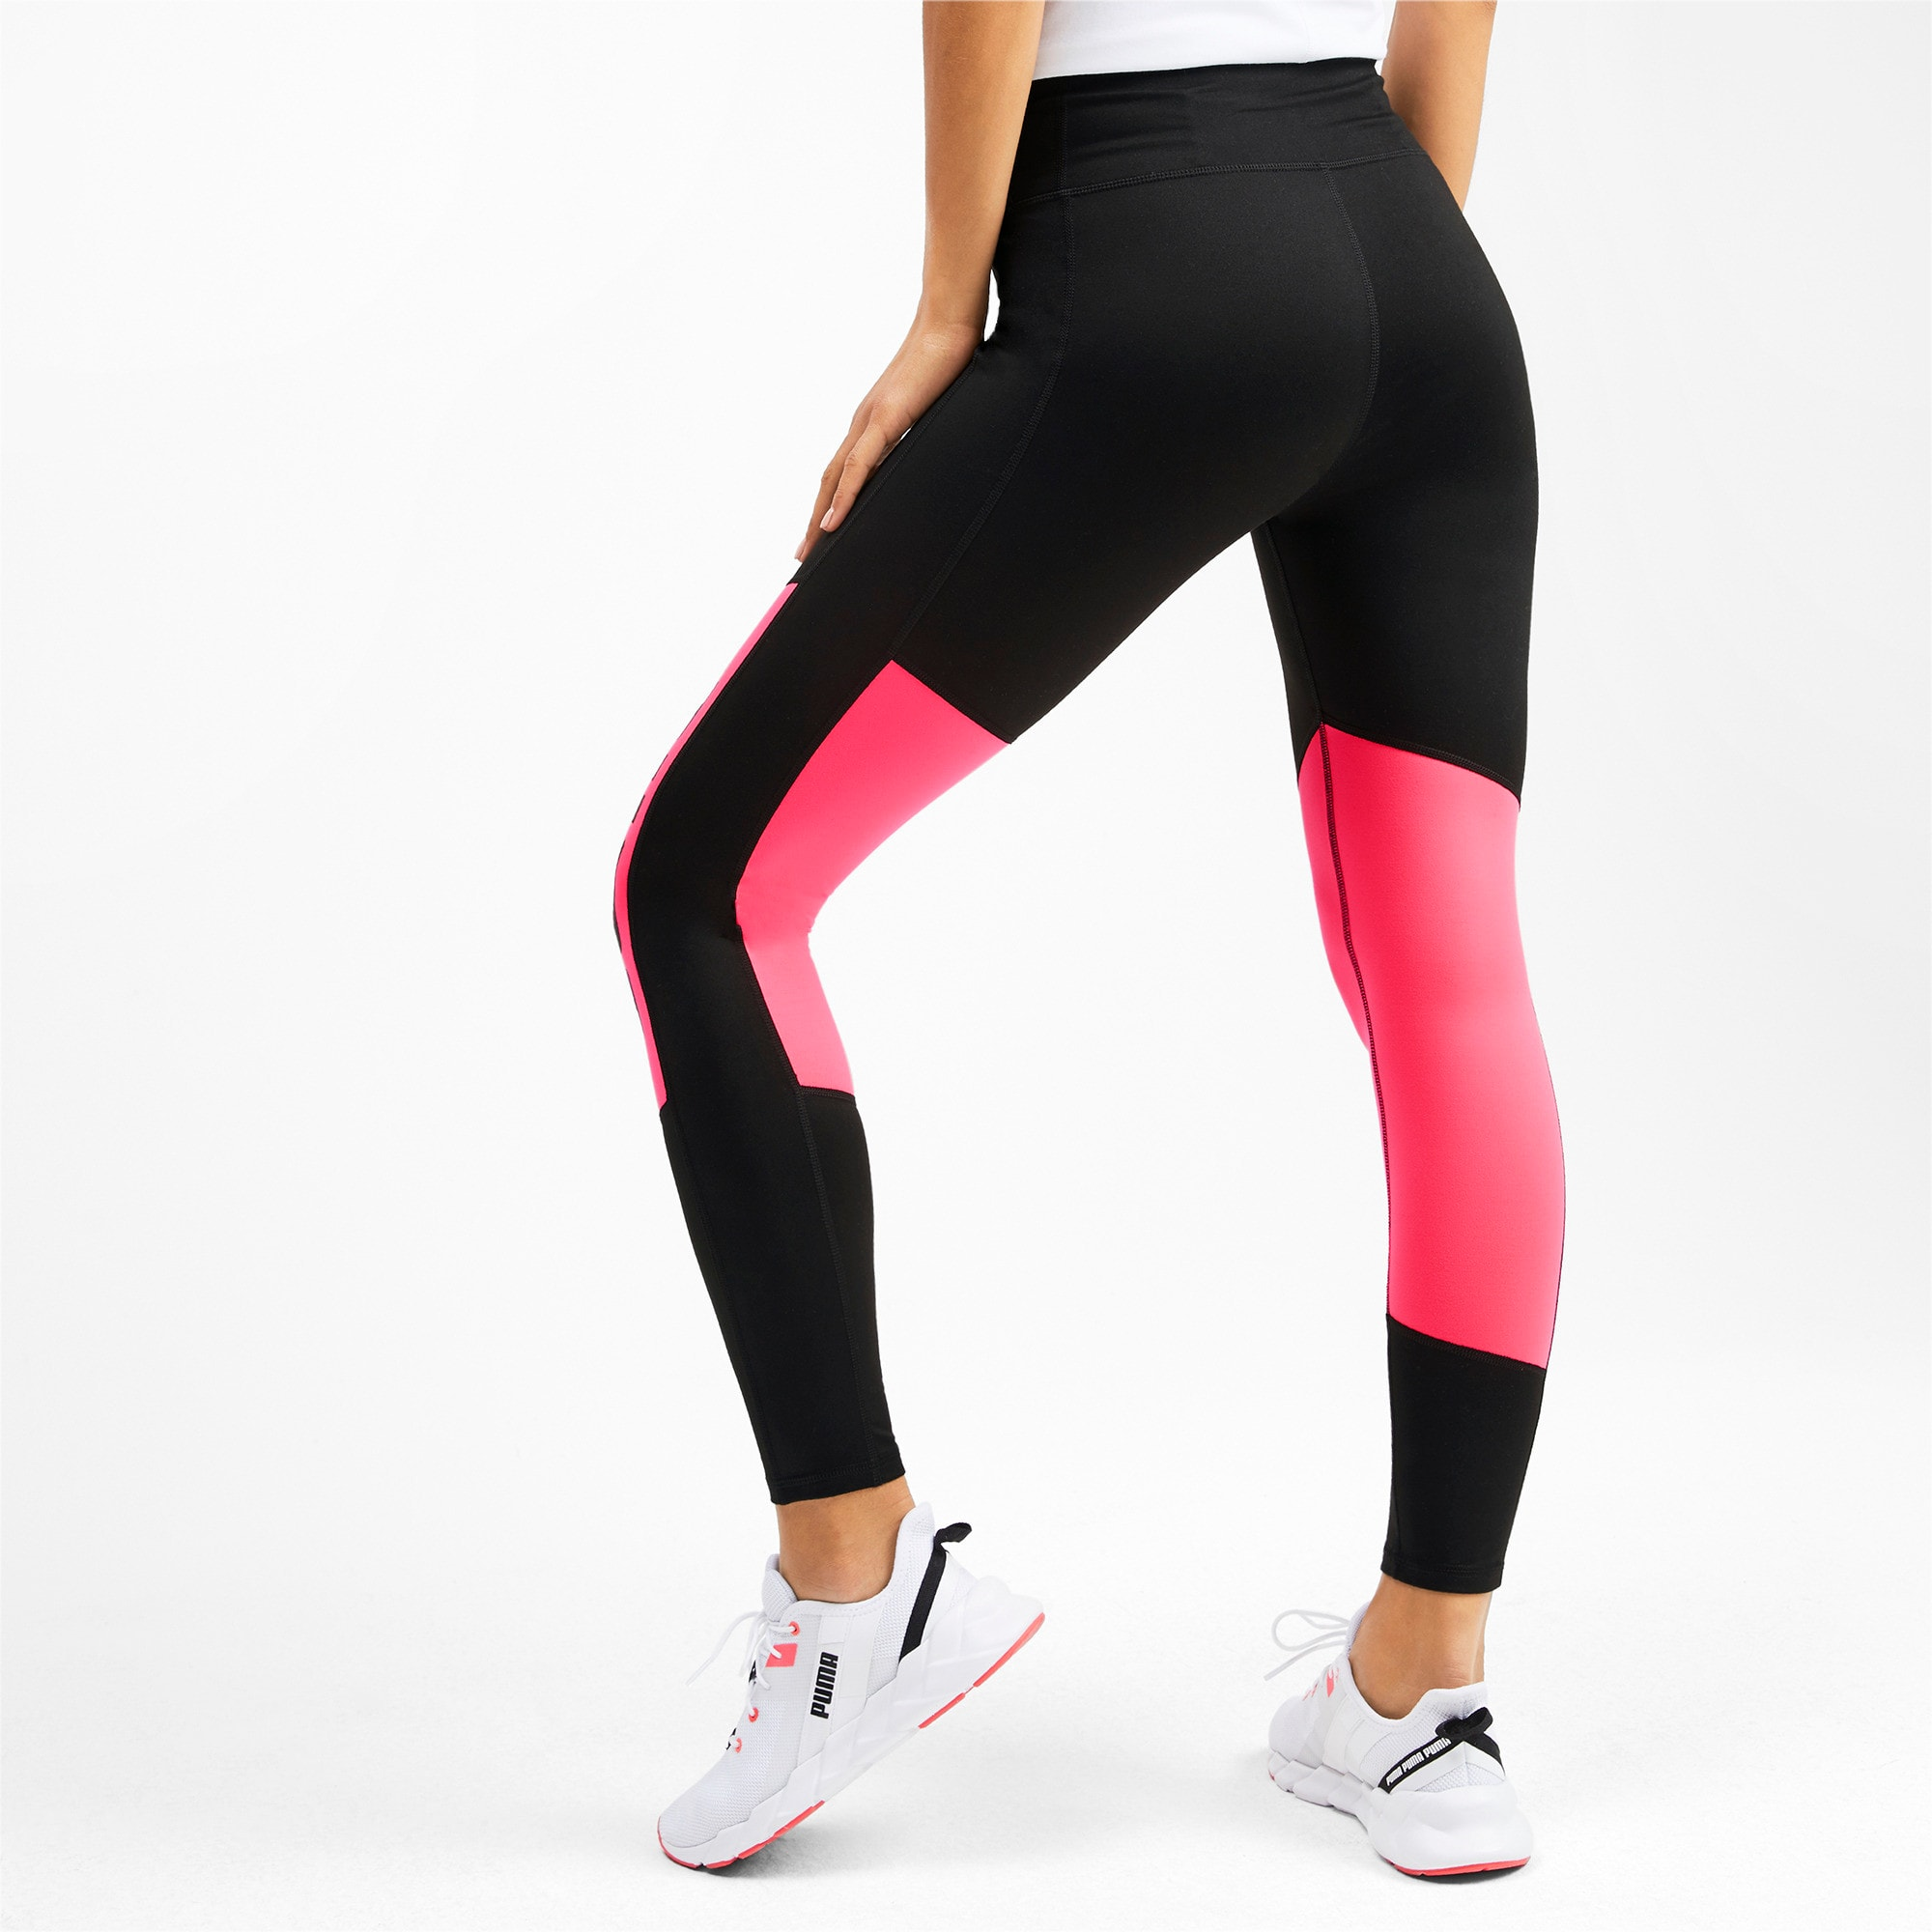 Thumbnail 2 of Leggings Training a 7/8 con grafica e logo donna, Puma Black-Pink Alert, medium